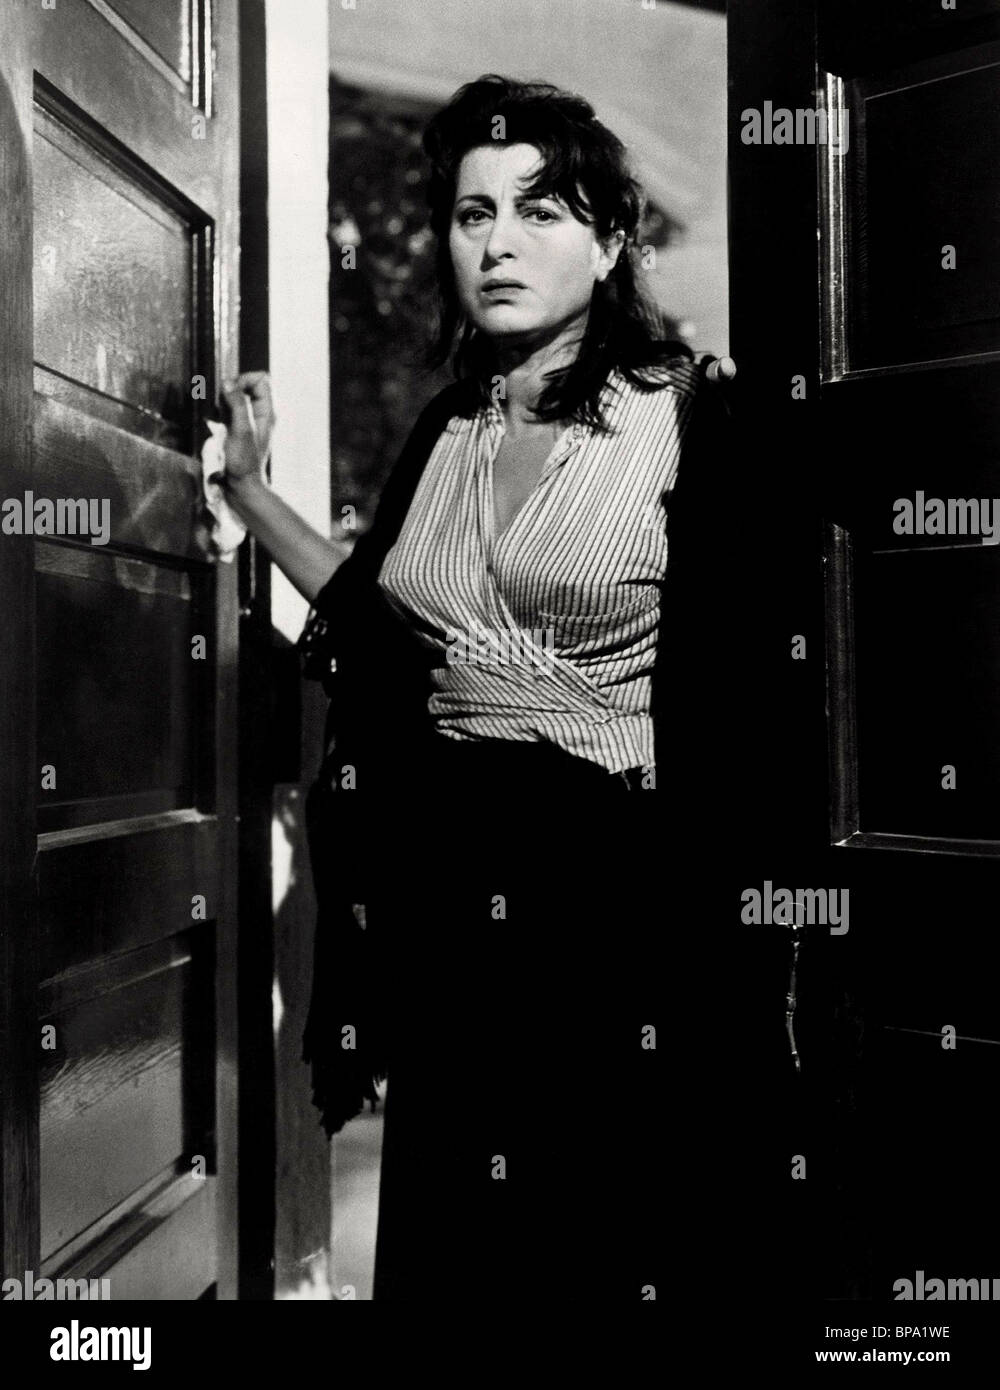 ANNA MAGNANI THE ROSE TATTOO (1955) Stock Photo